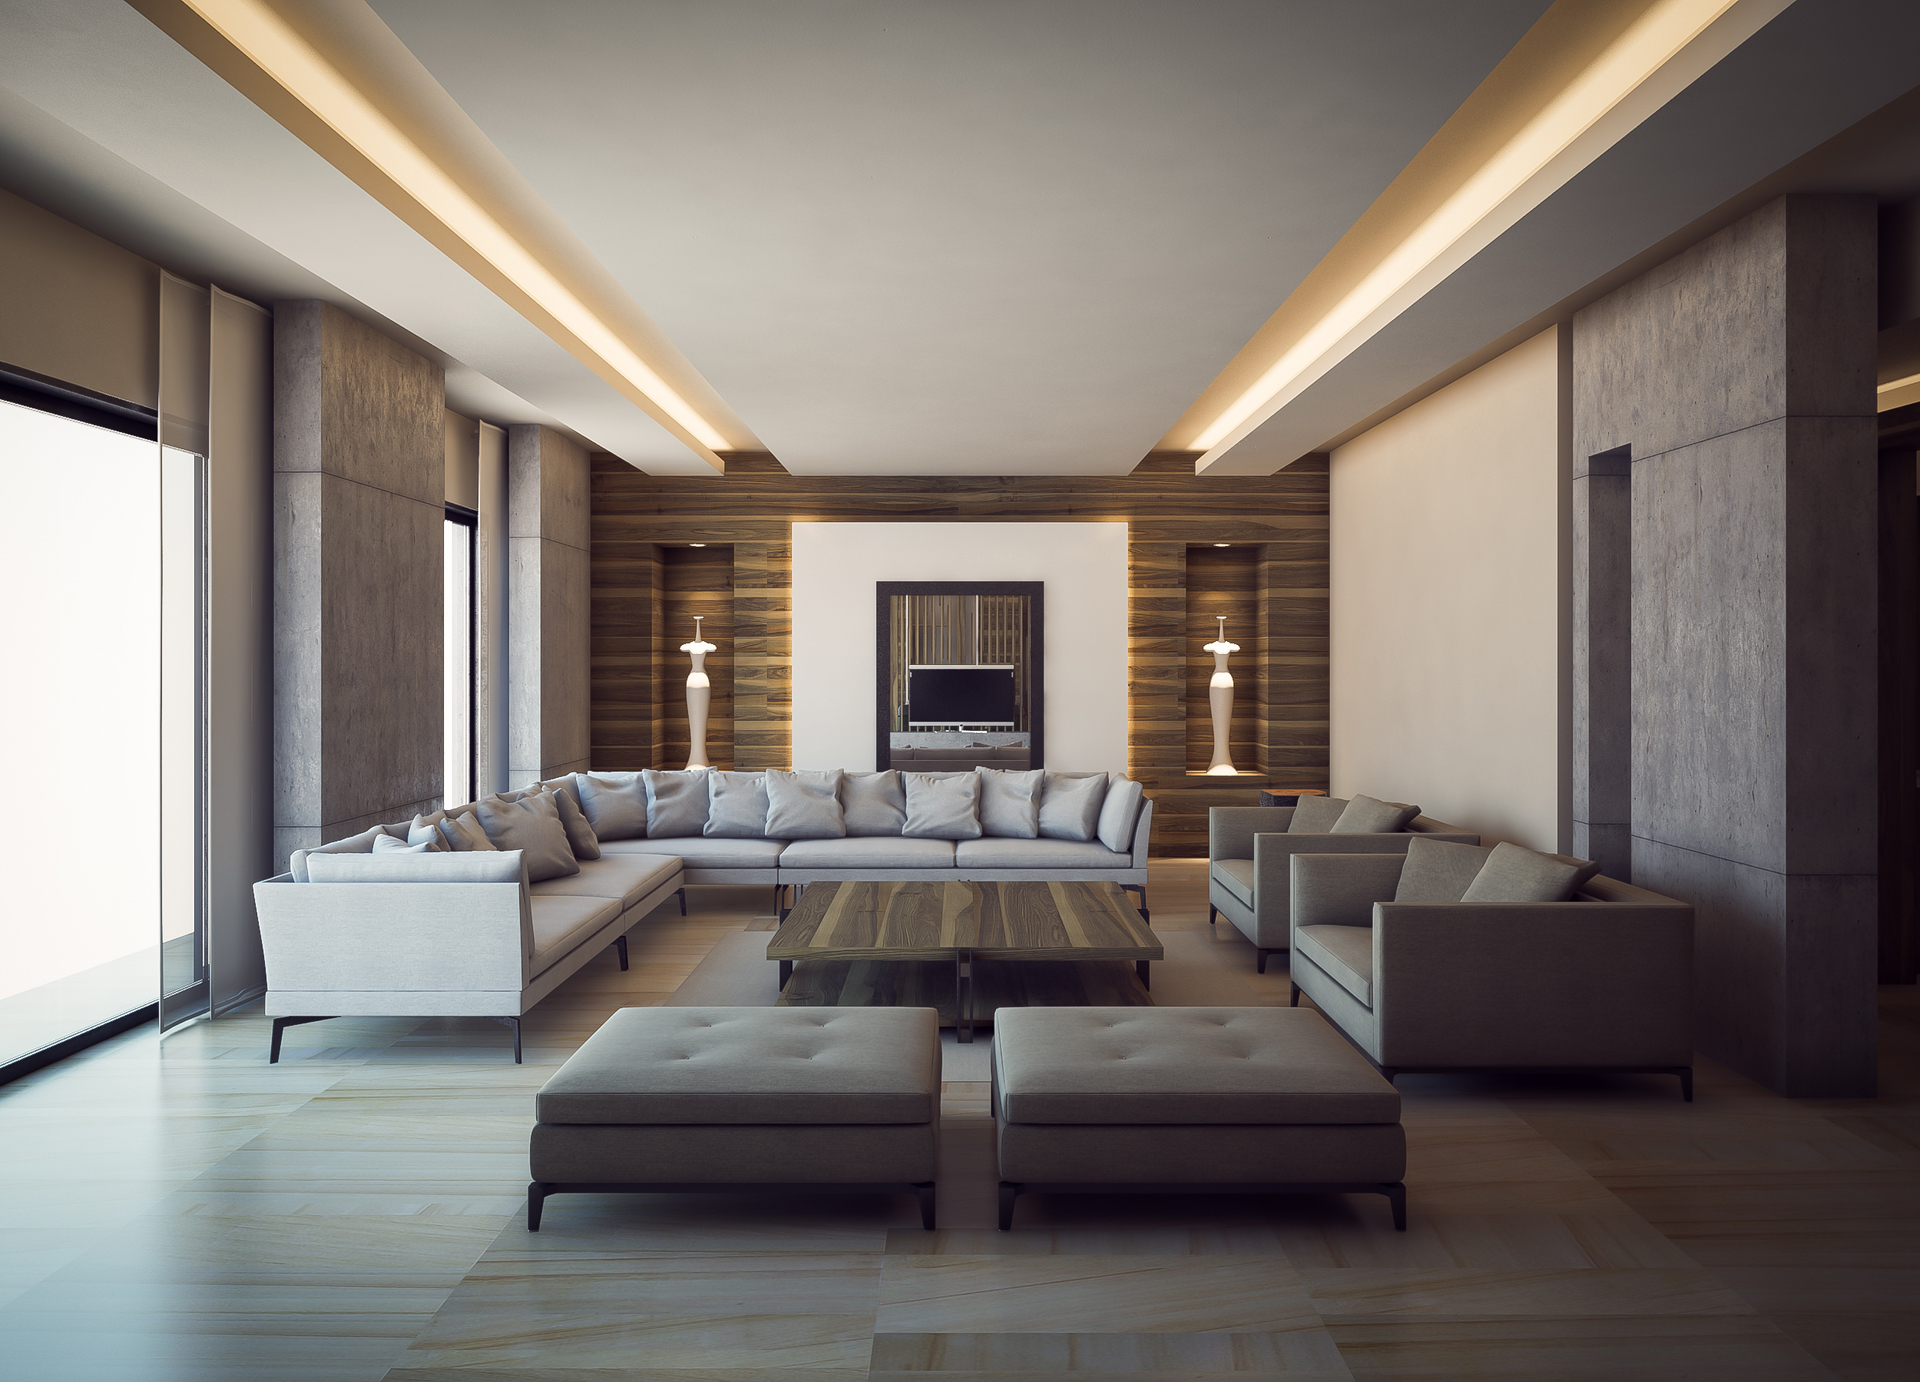 White Couch and Wooden Walls